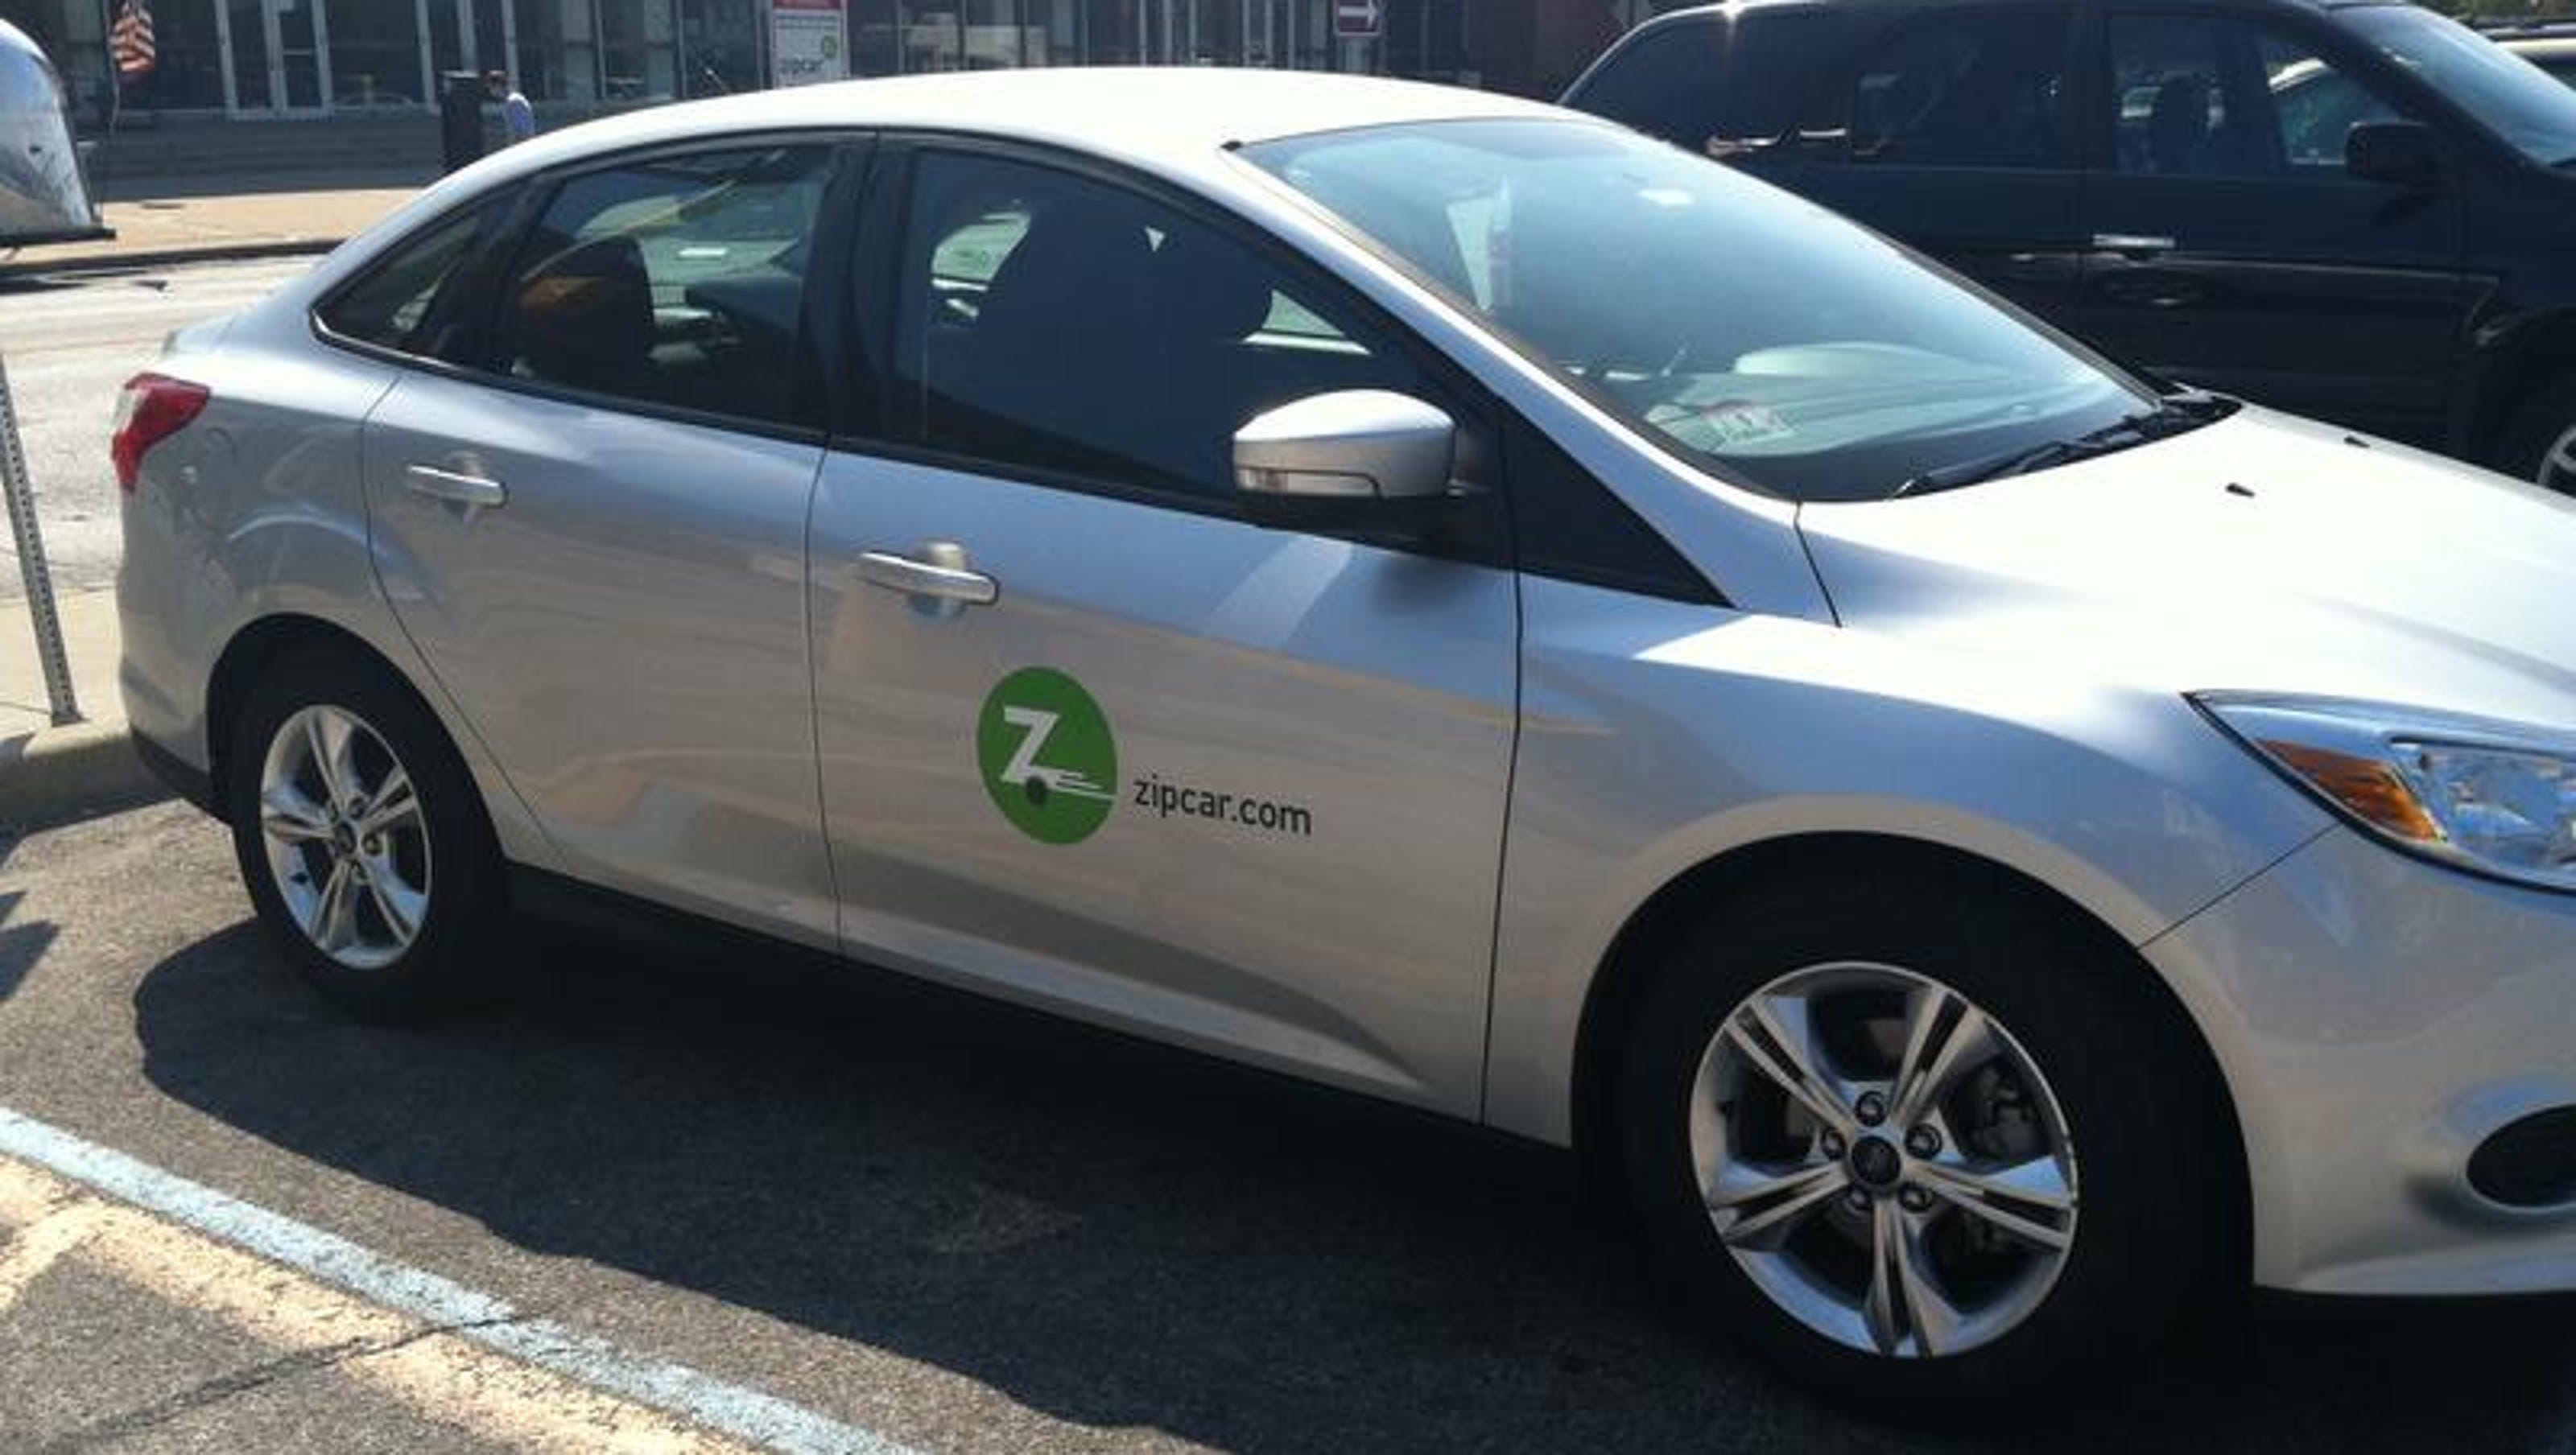 Iupui Partners With Zipcar To Offer Car Sharing Service